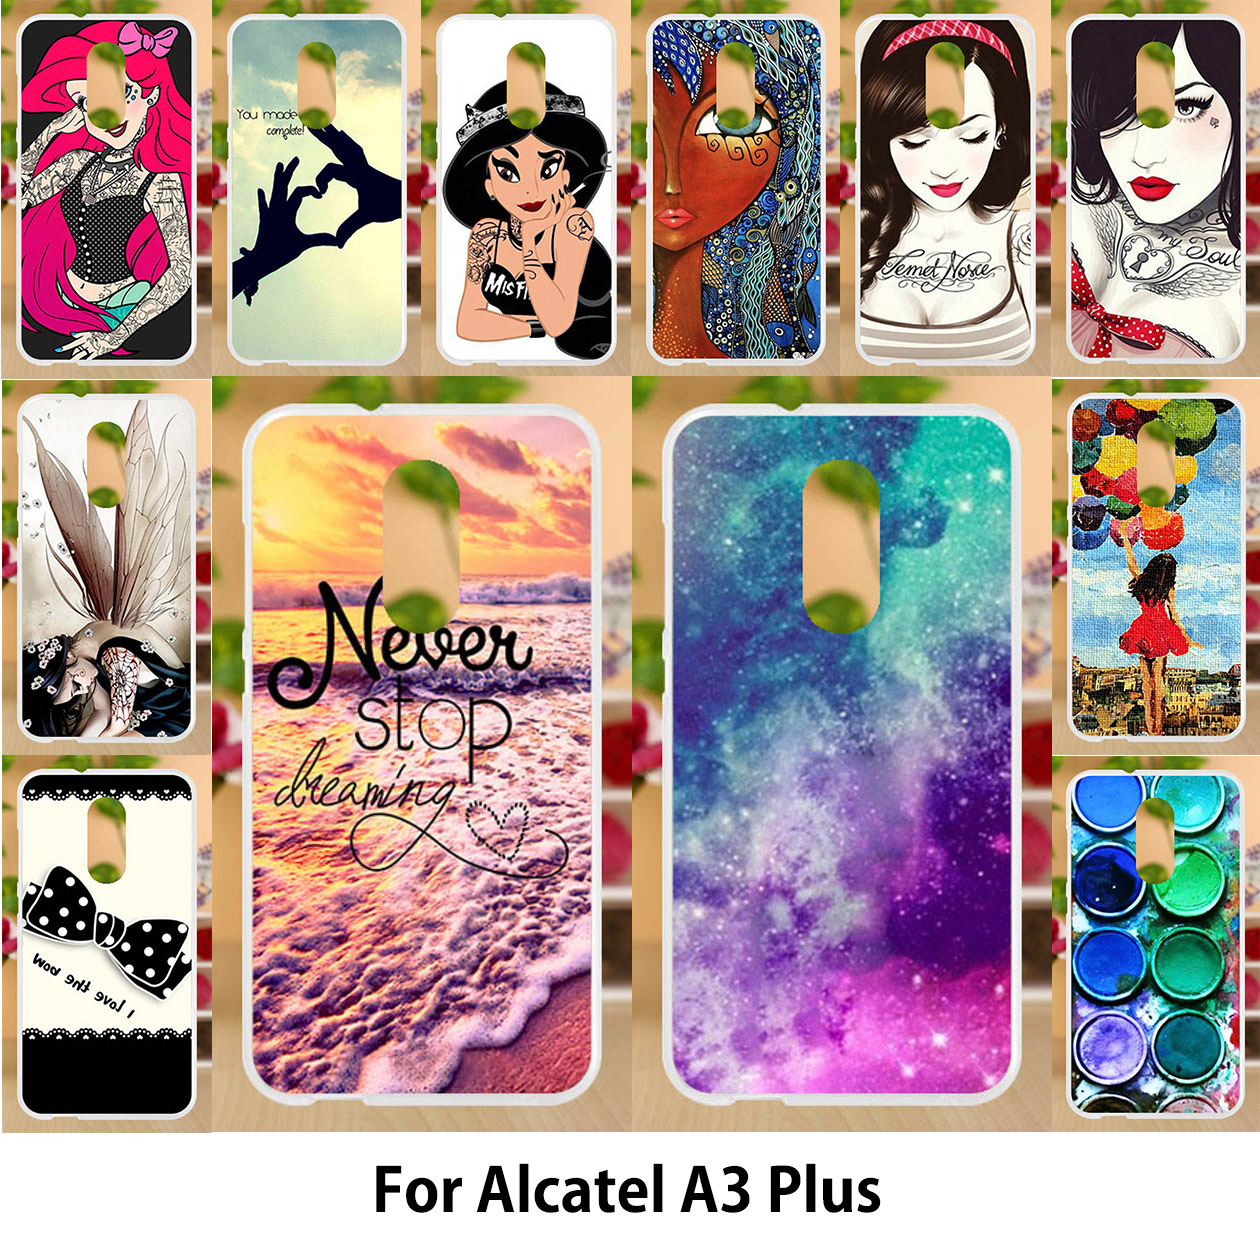 Anunob Case For Alcatel A3 Plus Cases TPU Soft Silicone 5 5 Inch Cover For Alcatel A3 Plus Covers Painting Star Hot Selling in Fitted Cases from Cellphones Telecommunications